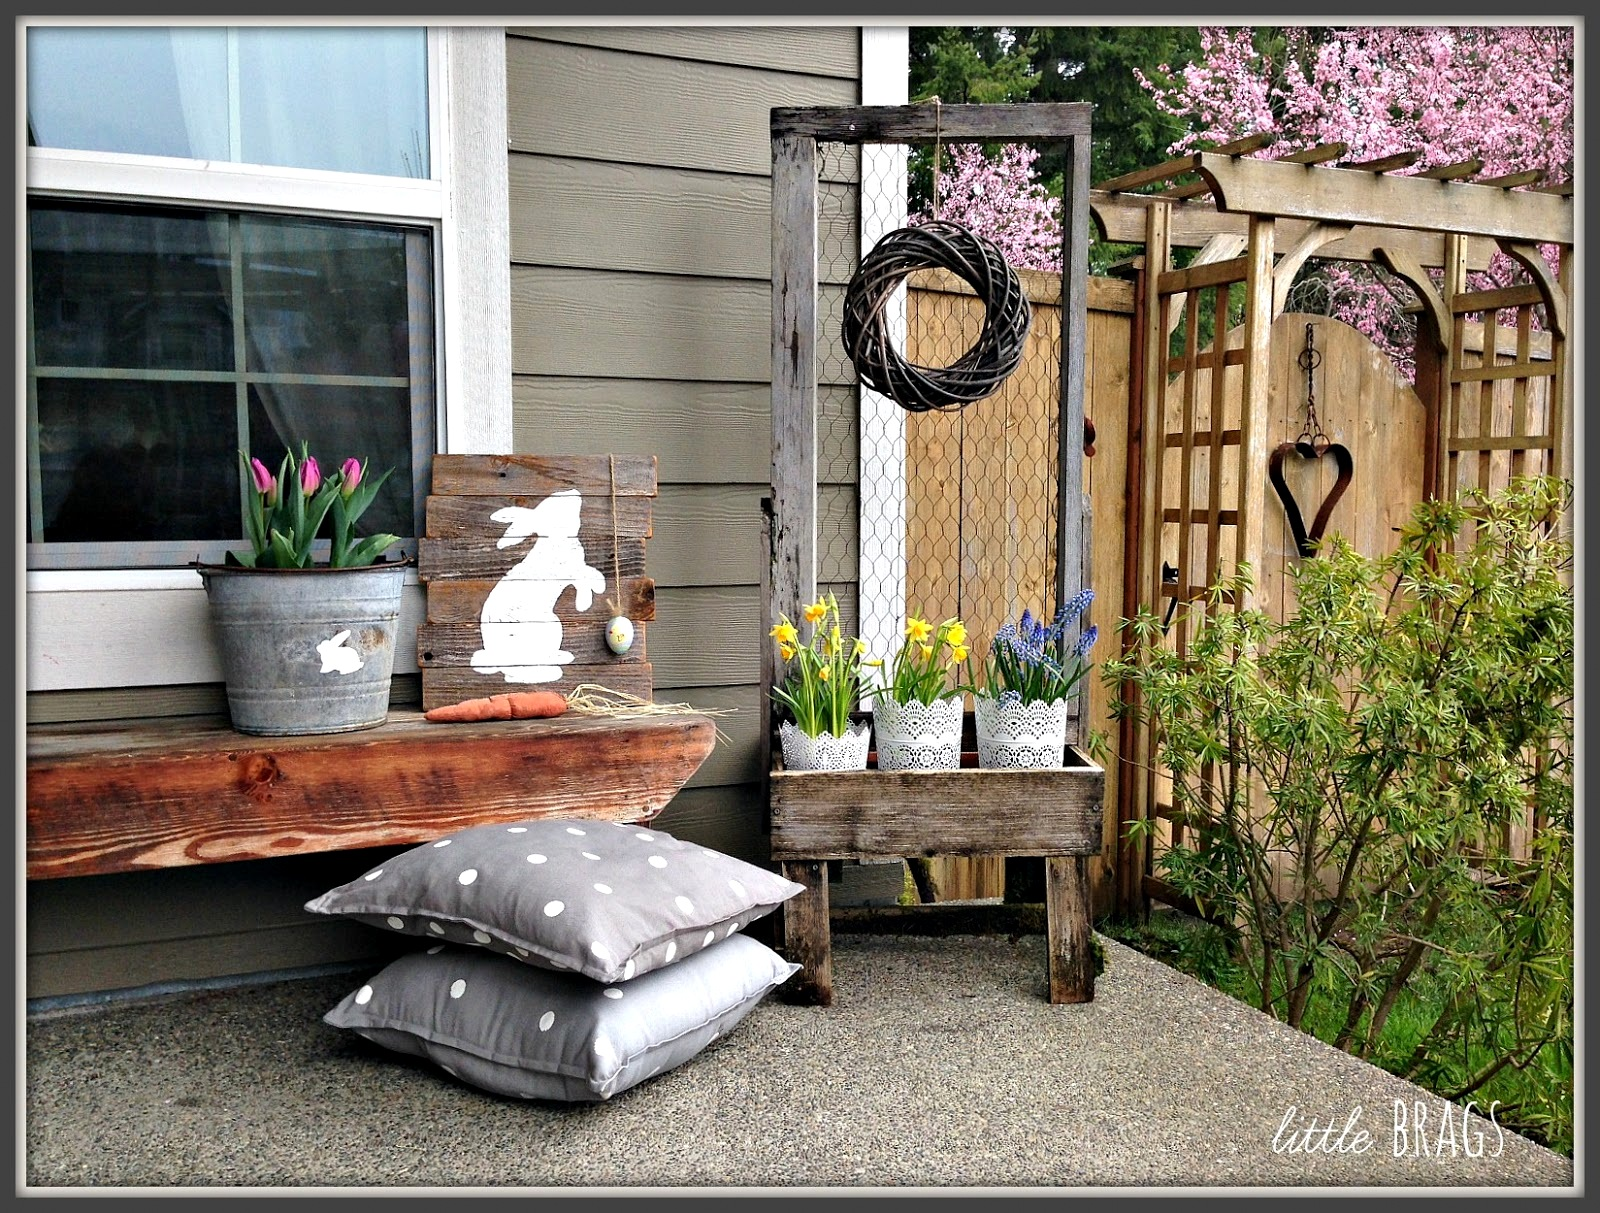 Stunning Easter Spring Med Porch By Little Featured On Kyjunk Interiors Pj Diy Spring Junk Junk Interiors Ky Junk Interiors Pallet Sofa Ky Junk Interiors Pallet Chair houzz-03 Funky Junk Interiors